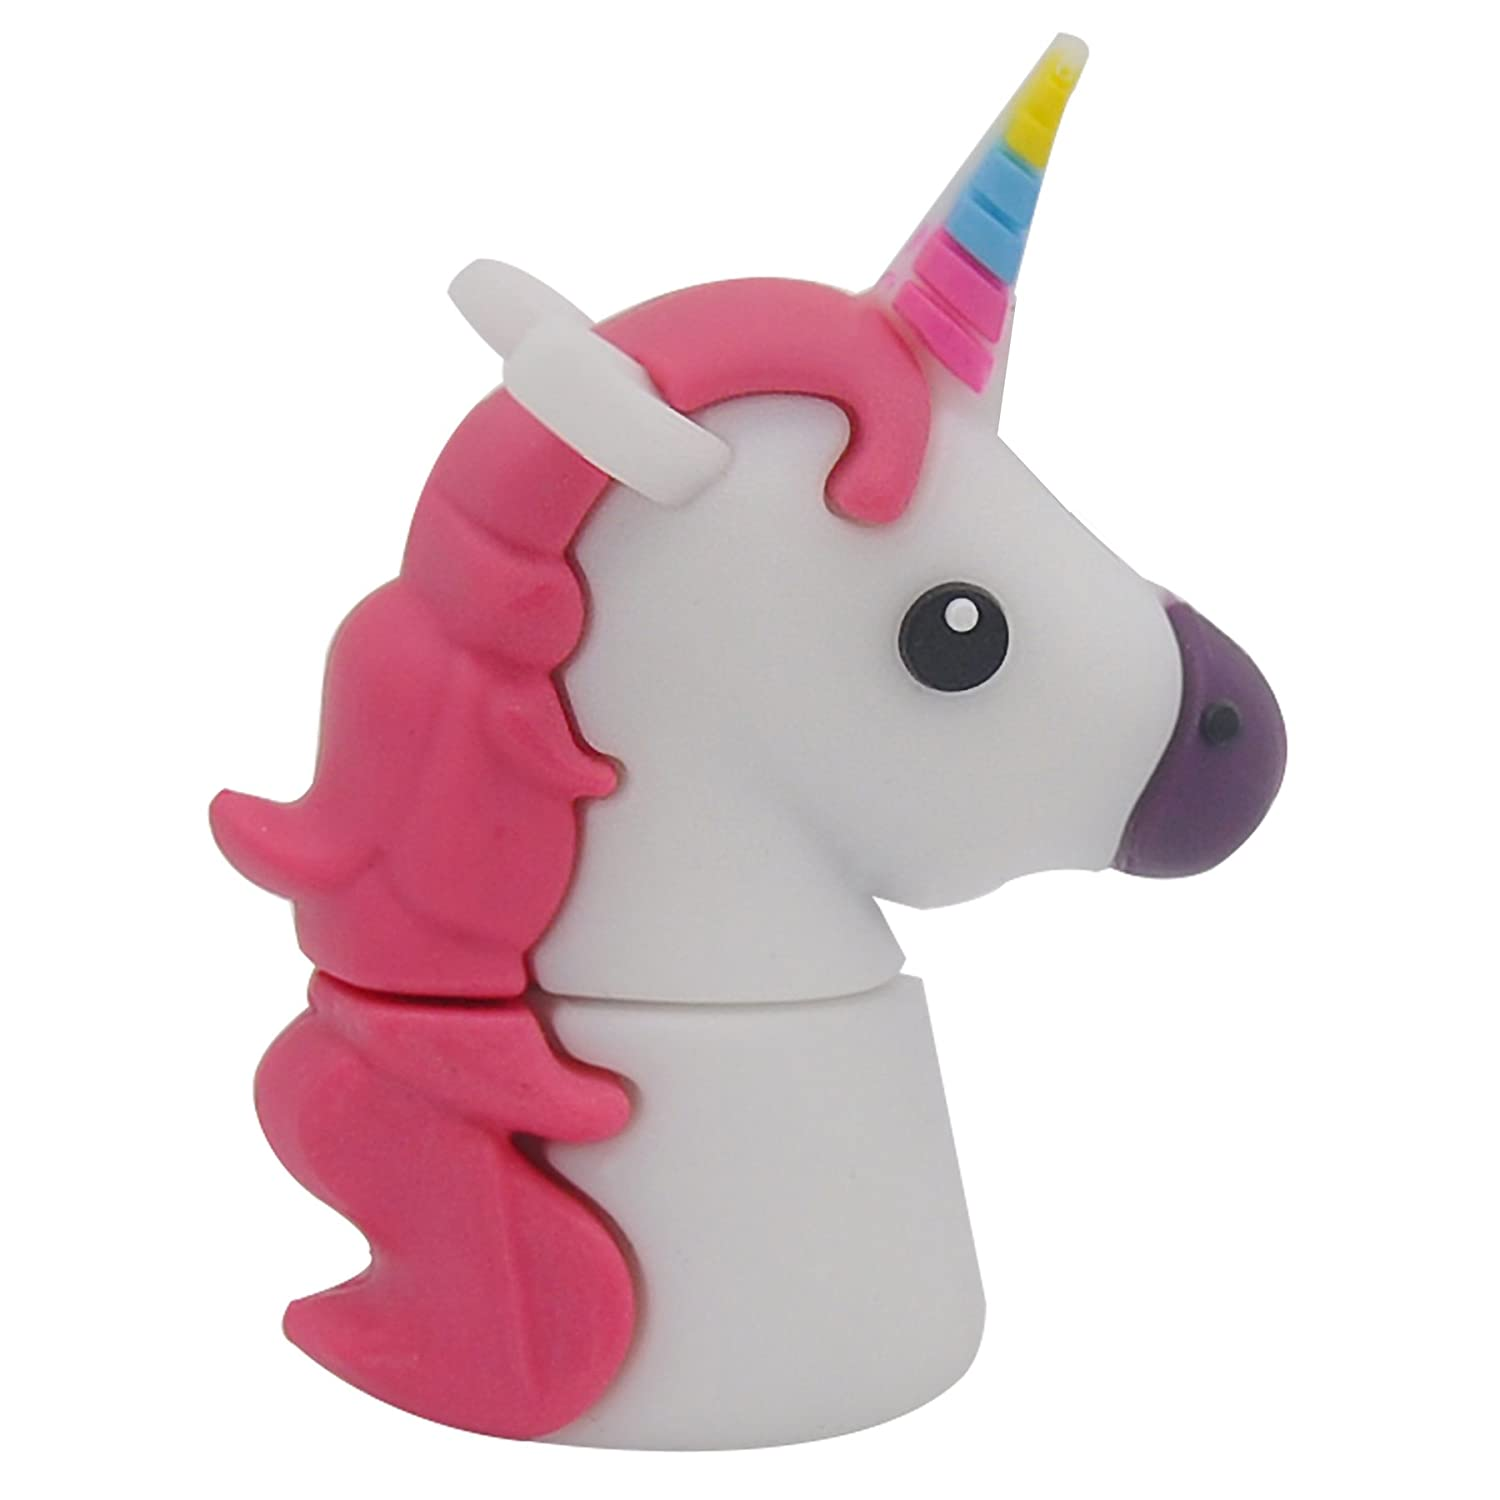 818-Shop no17300010008 USB PenDrive (32 GB) favoloso animale bianco unicorno 818-Tech